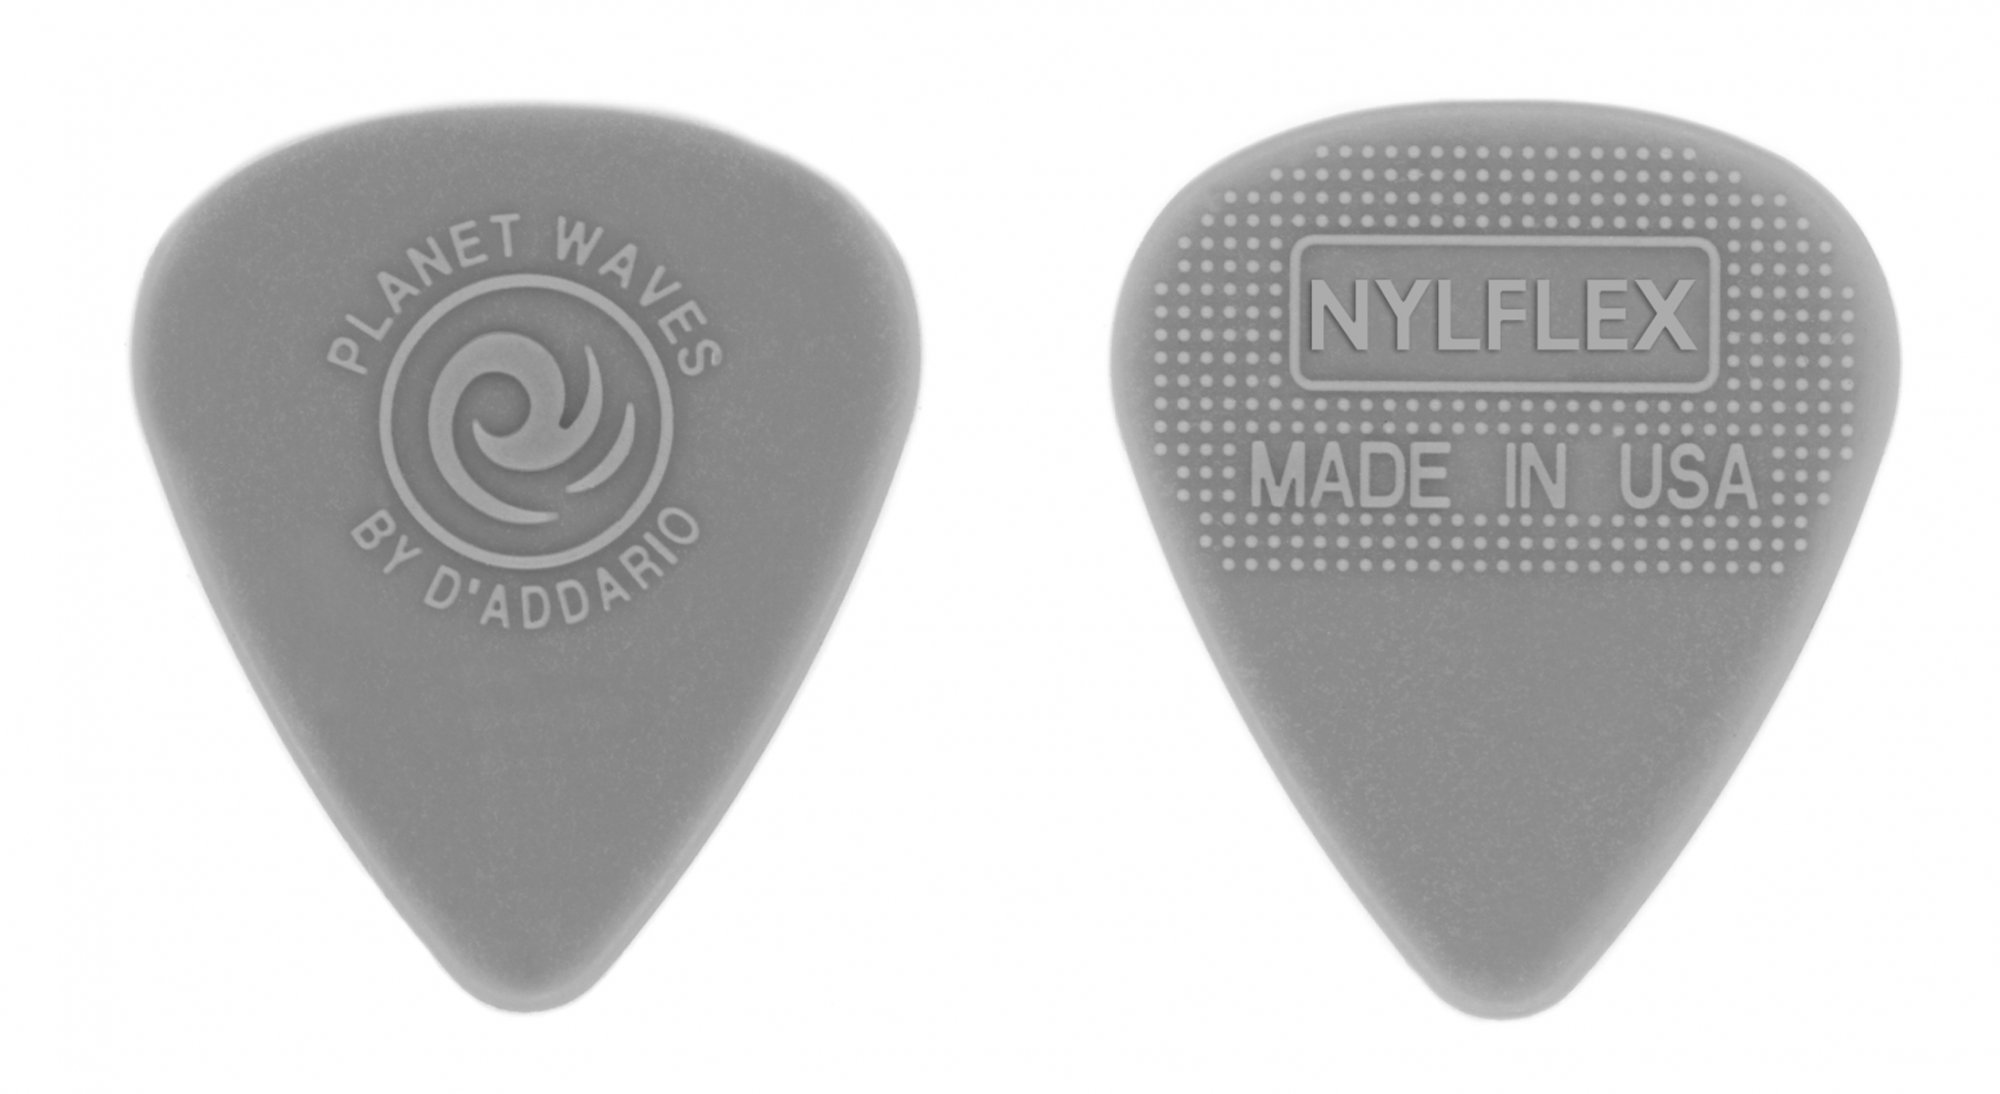 D'Addario/Planet Waves Nylflex 10-Pack >Heavy 1NFX6-10